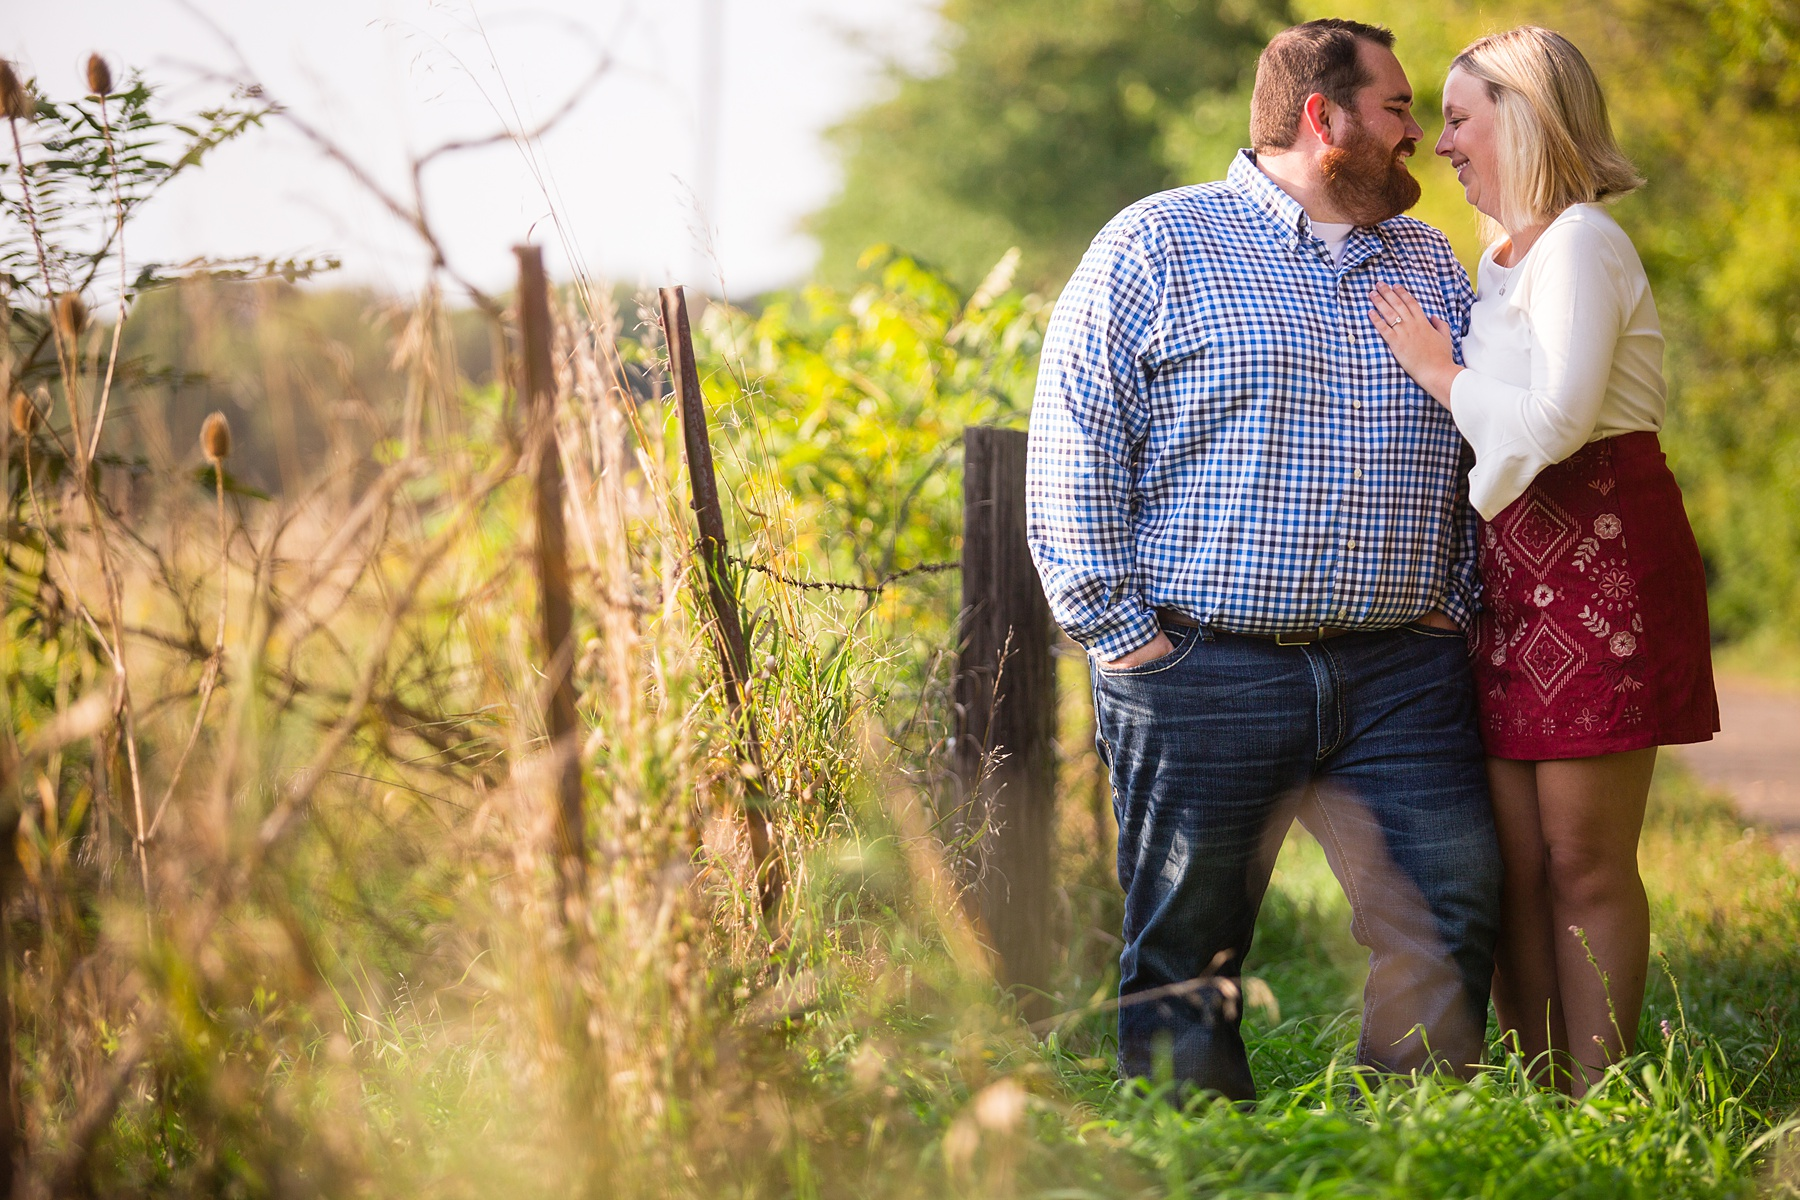 Brandon_Shafer_Photography_Megan_Nate_West_Michigan_Engagement_Photos_0006.jpg